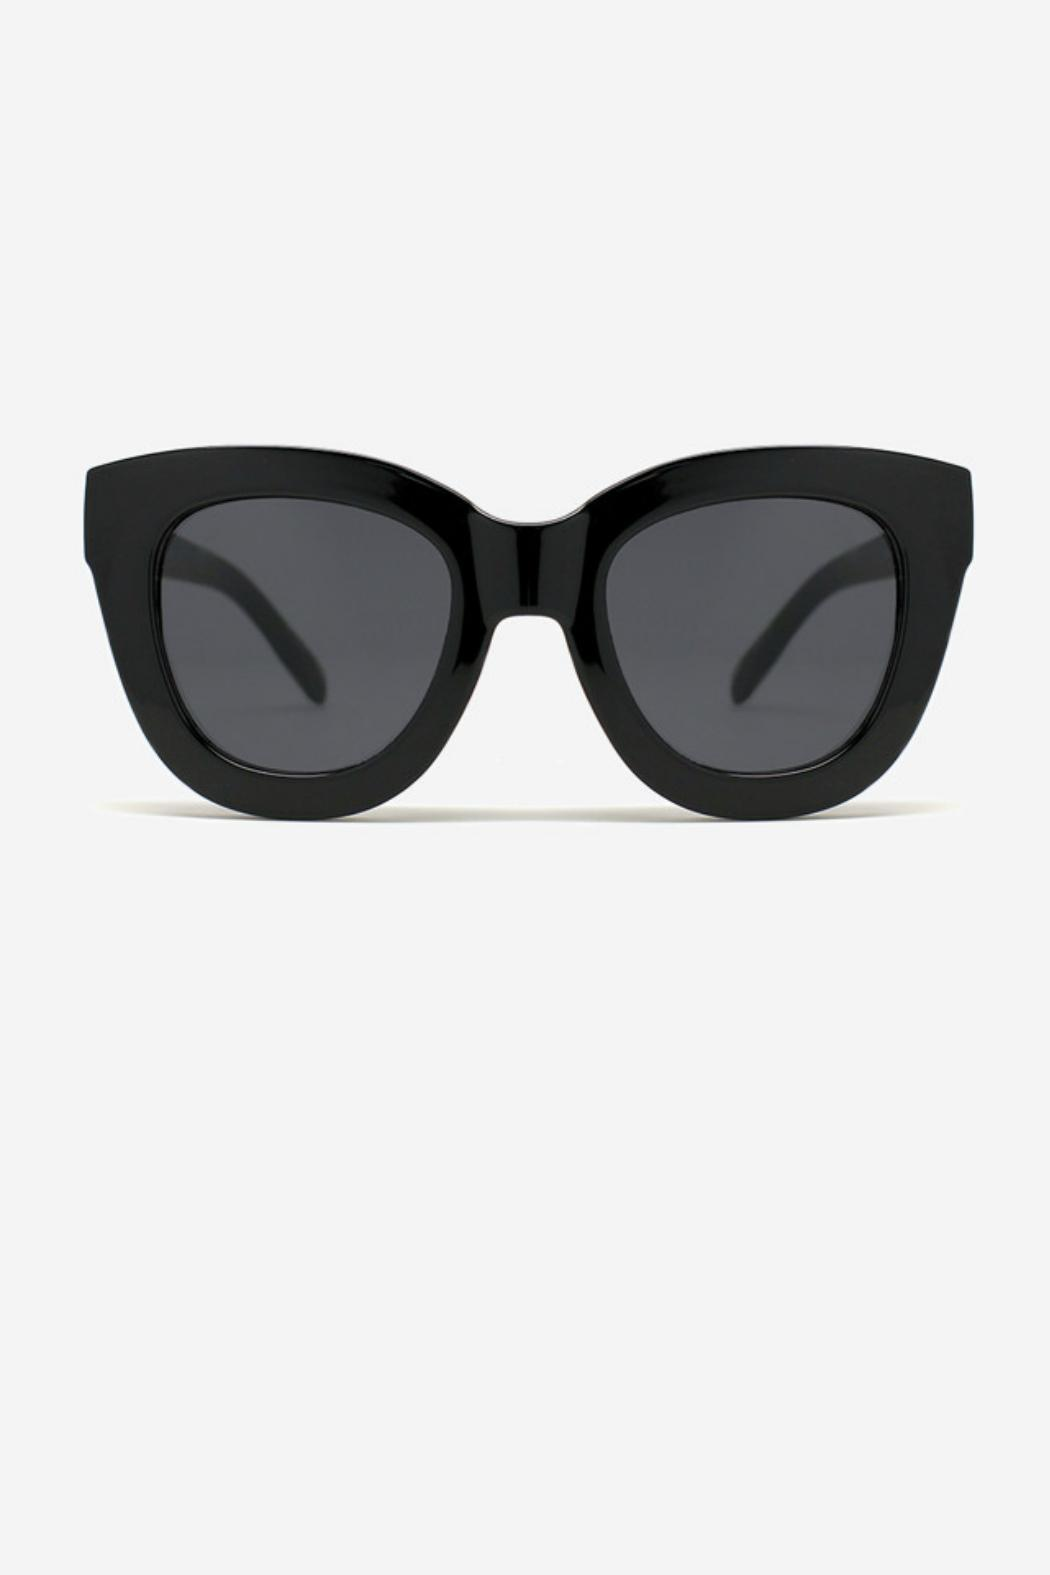 5dad78e2b6 Quay Australia Sugar And Spice Sunglasses from Texas by POE and ...